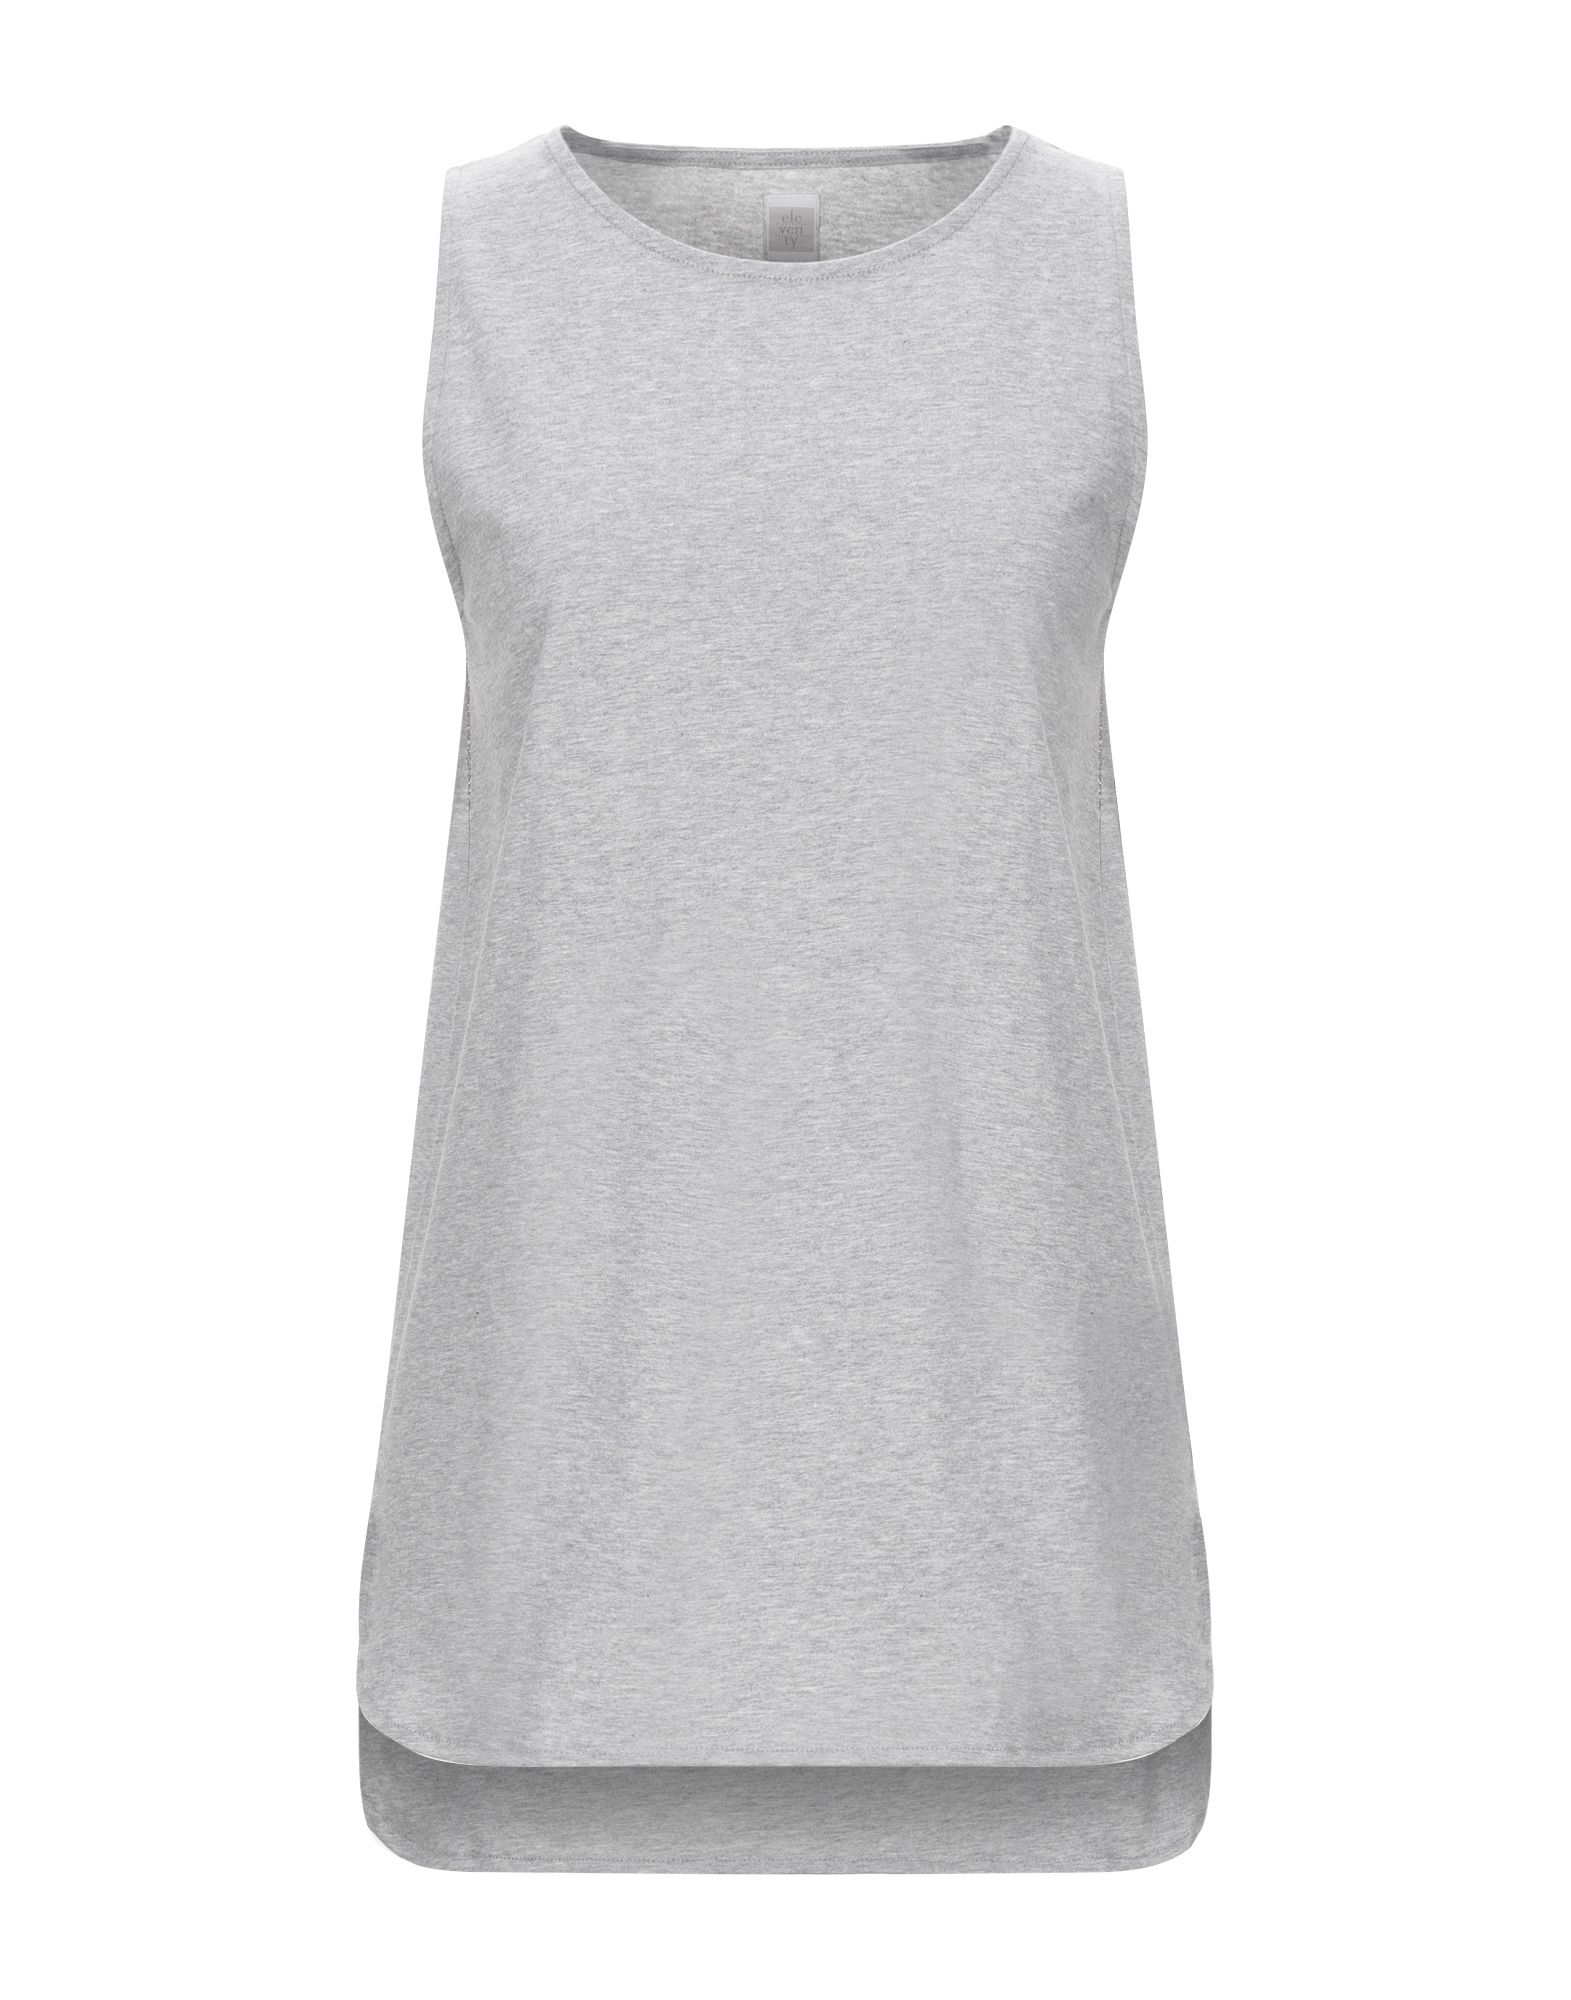 ELEVENTY Tank tops. jersey, lamé, side seam stripes, solid color, round collar, sleeveless, no pockets. 100% Cotton